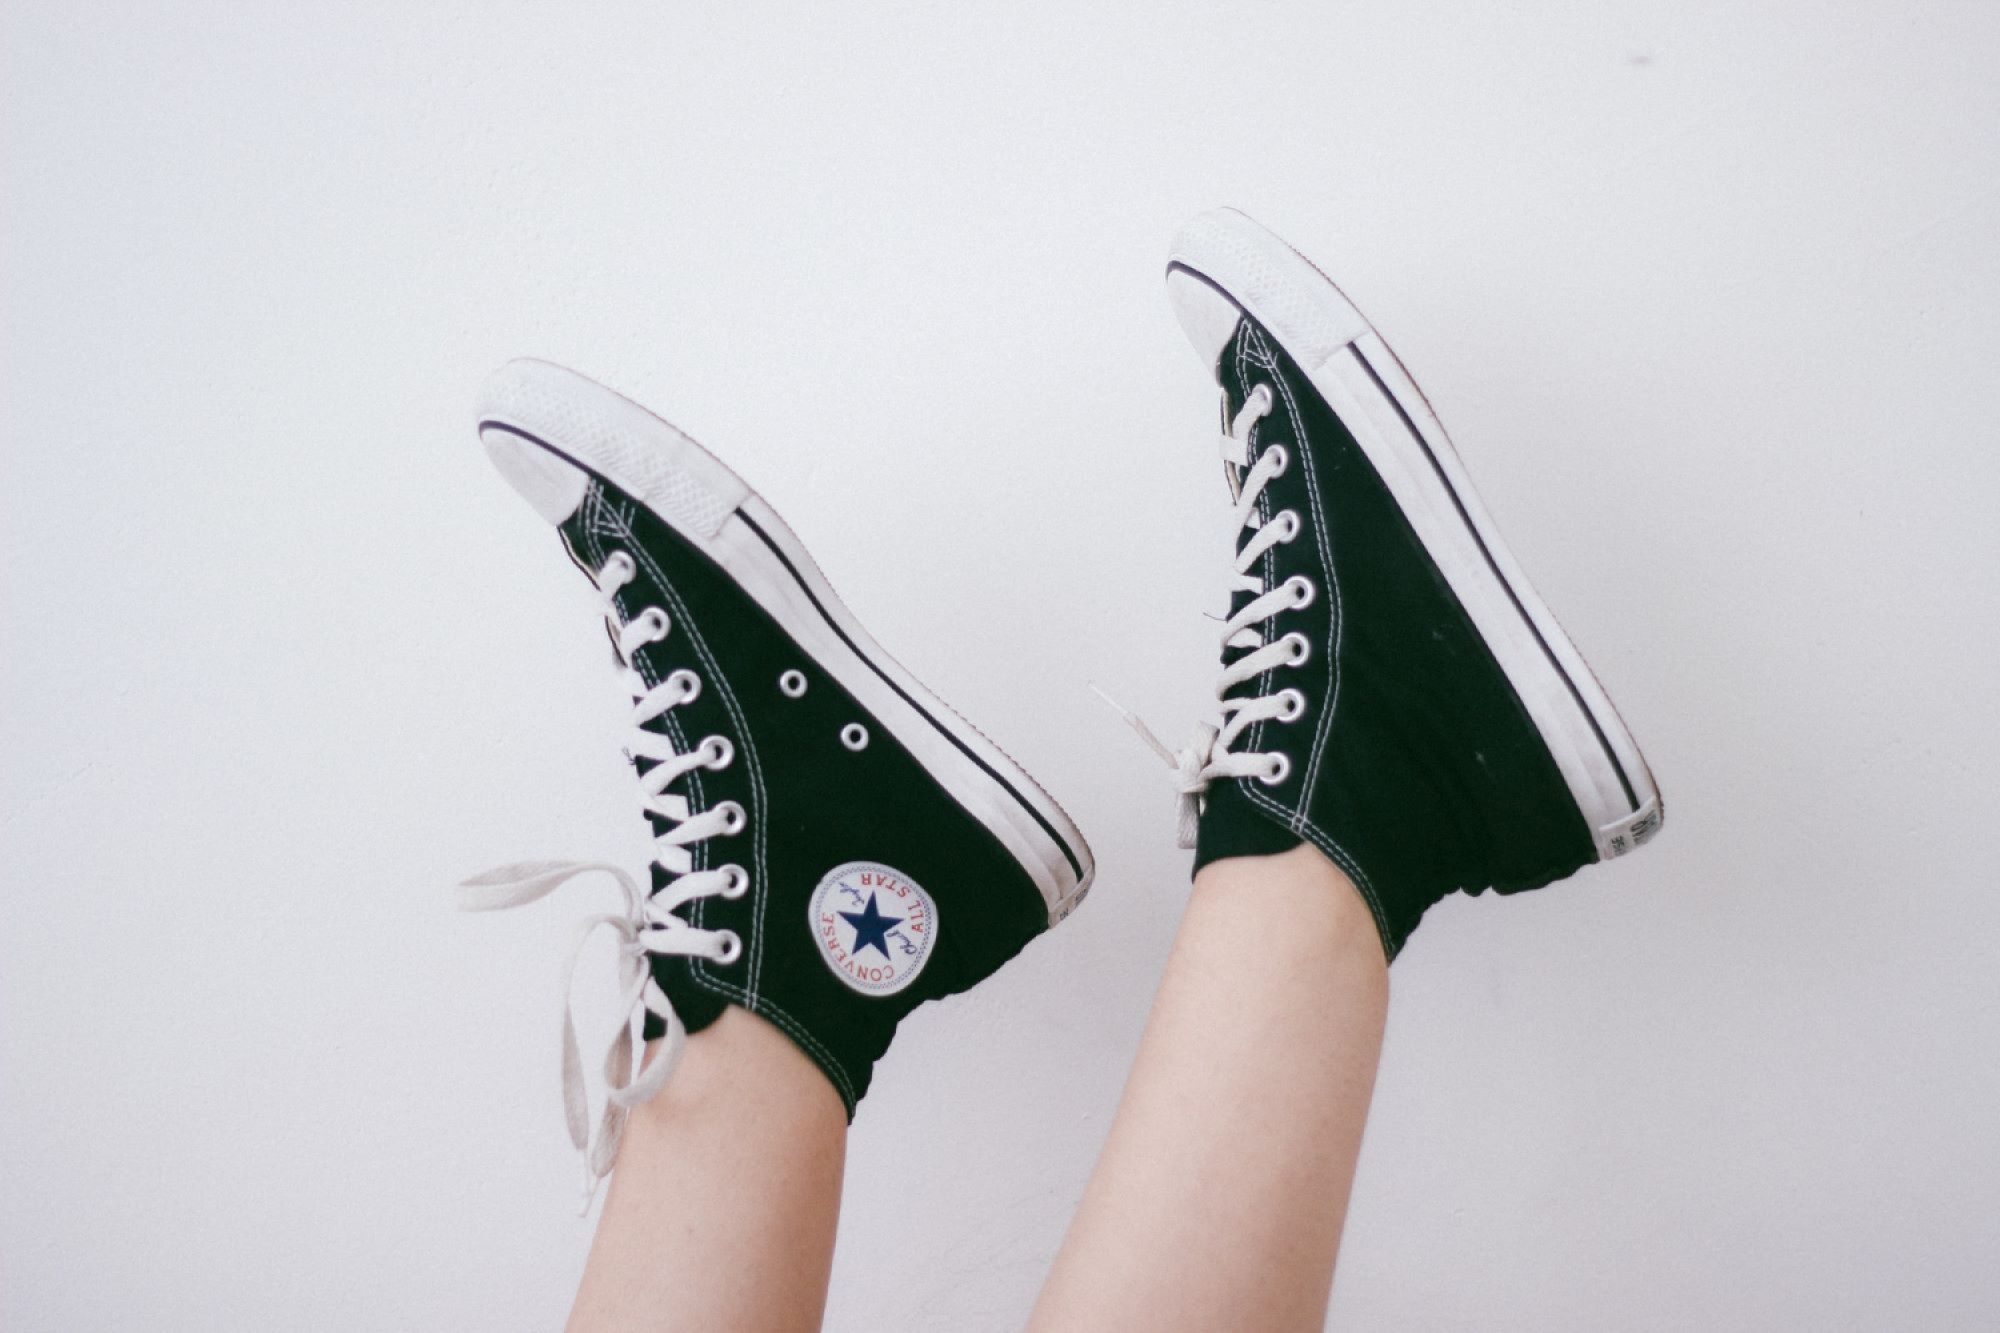 8 Vegan Shoes To Help You Switch to a More Ethical Lifestyle